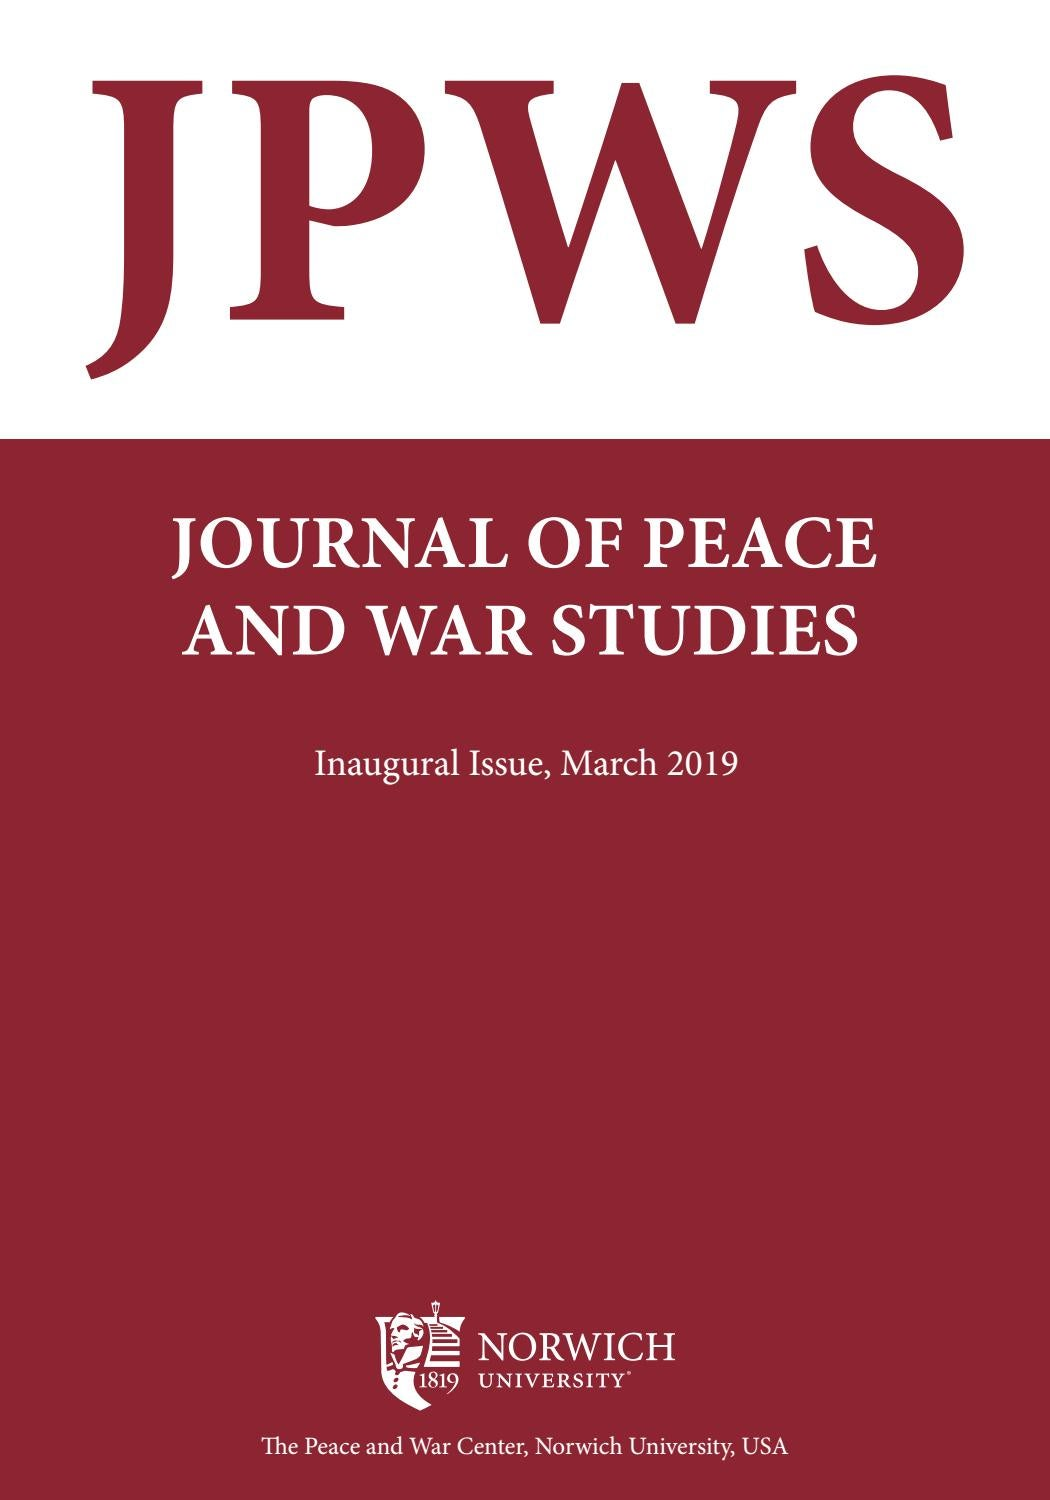 JOURNAL OF PEACE AND WAR STUDIES | March 2019 by Norwich